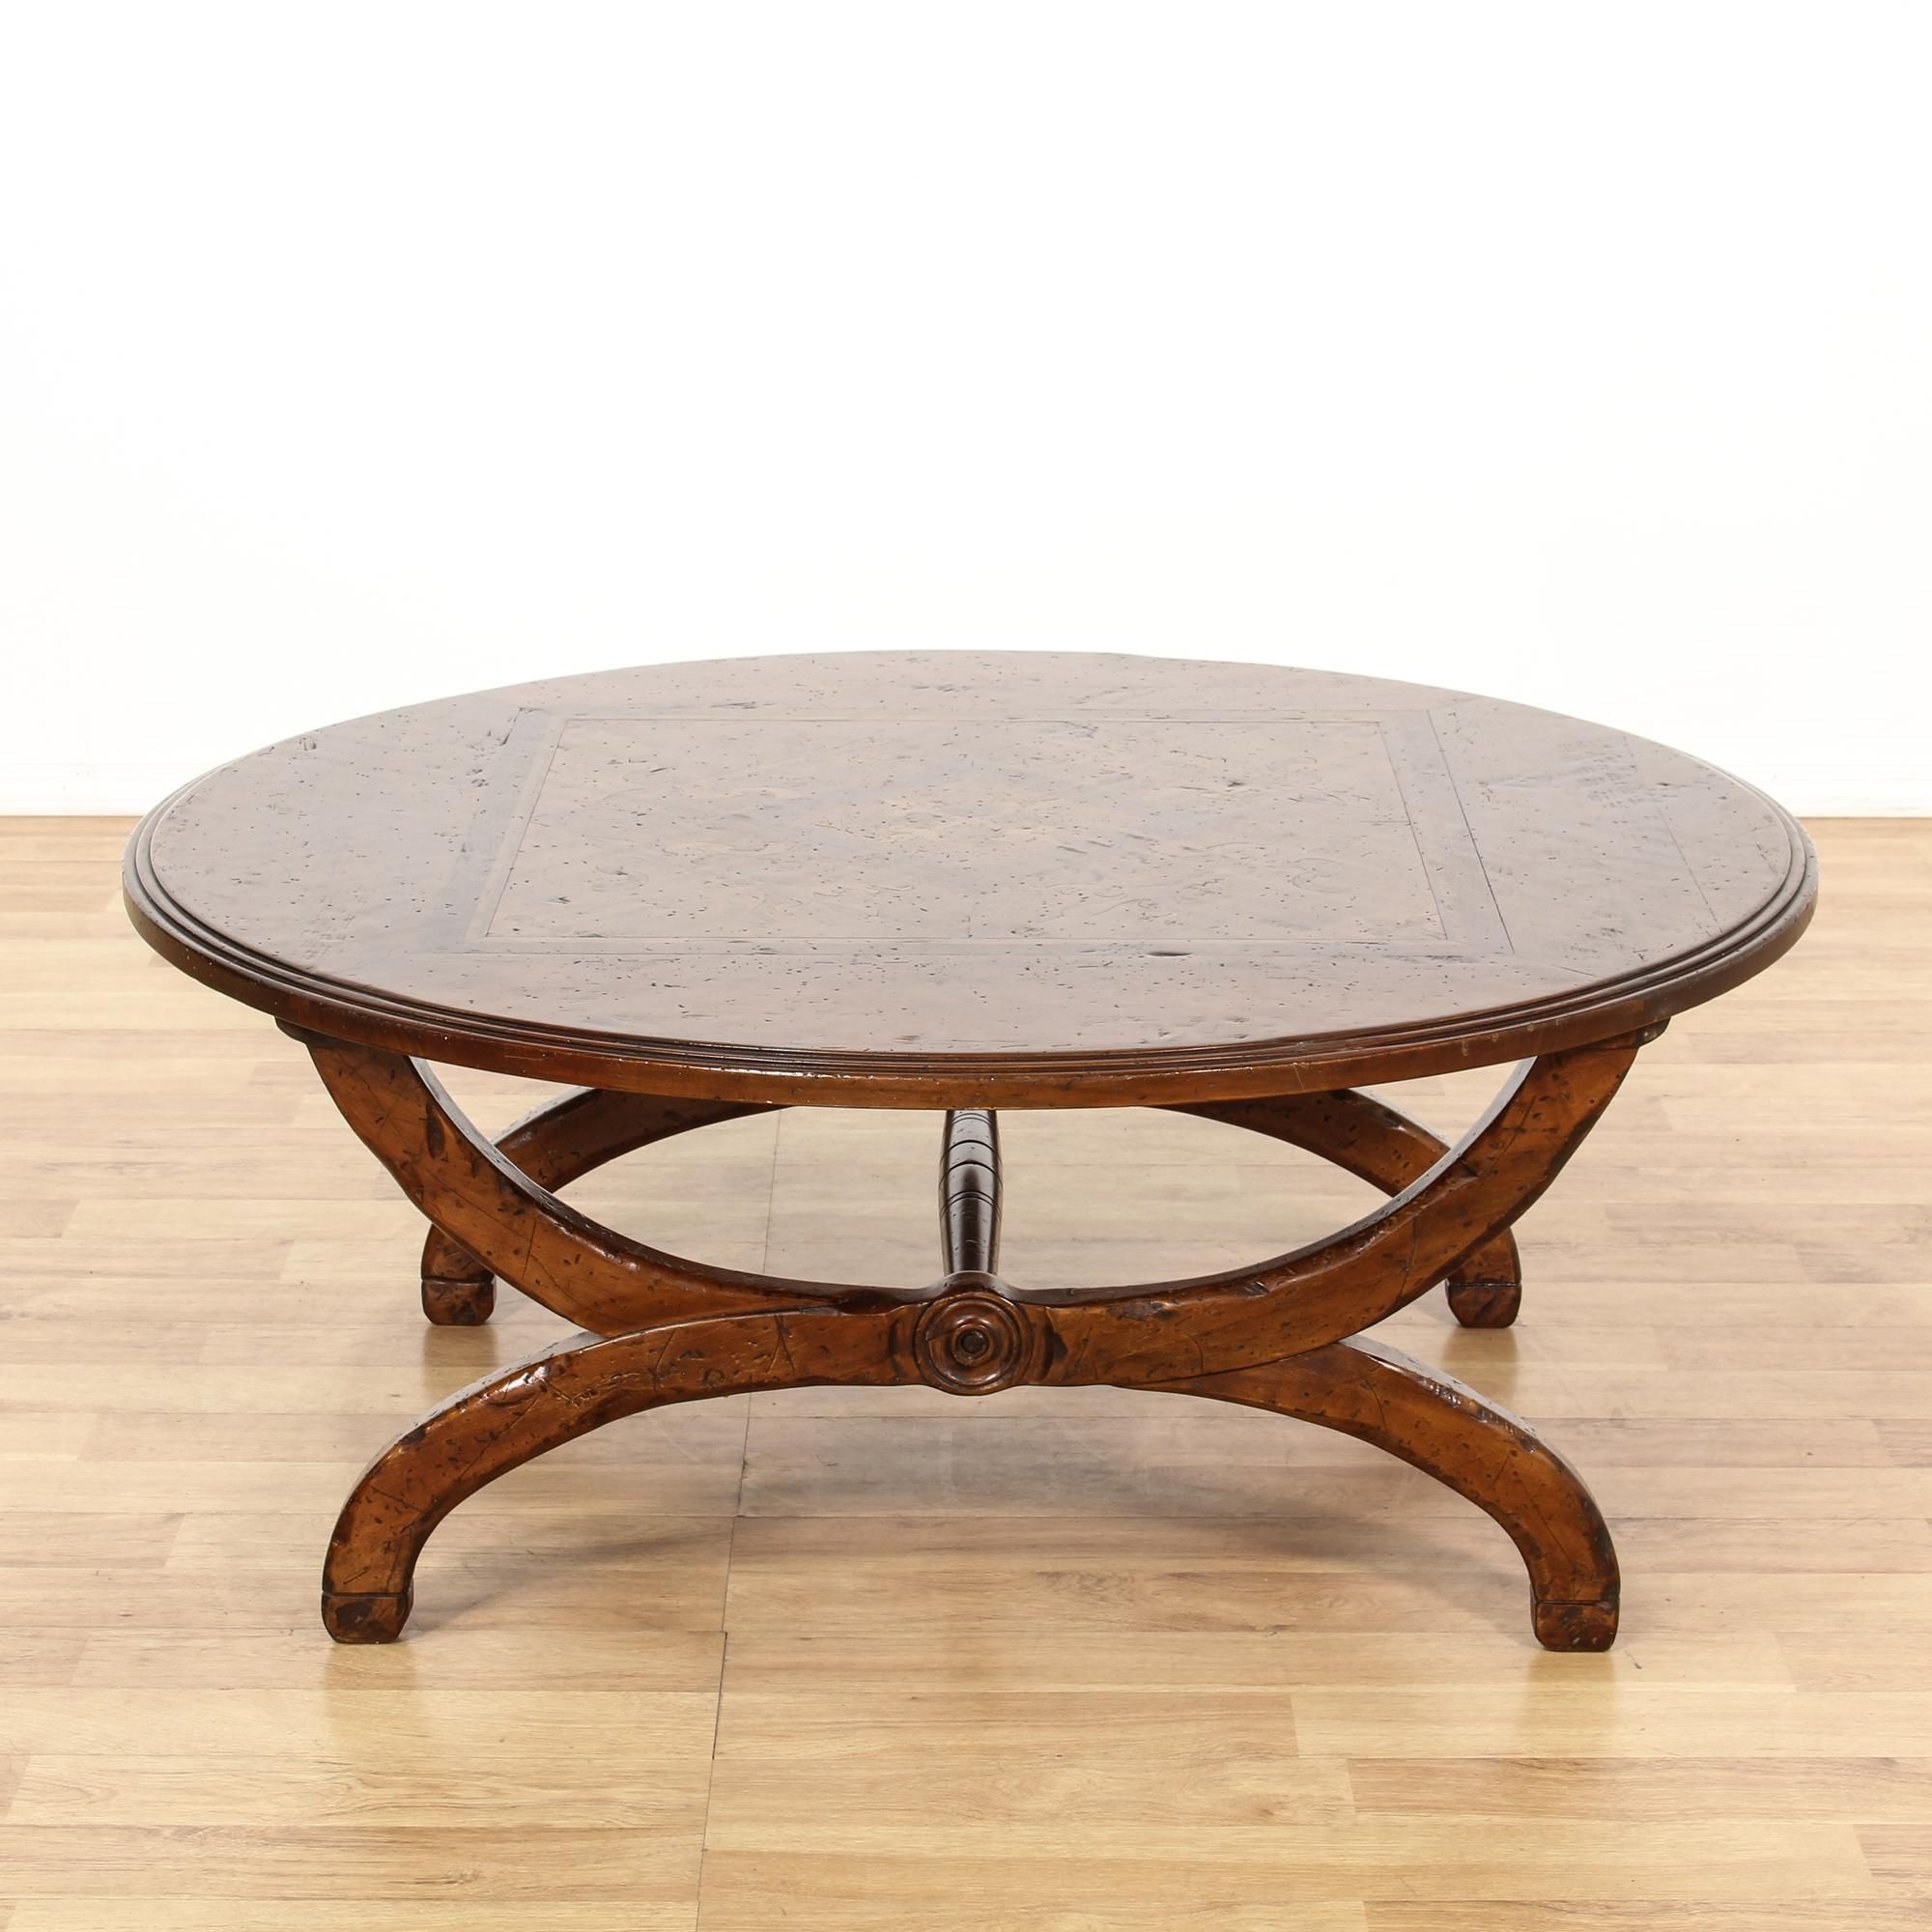 Round Italian Marquetry Inlaid Coffee Table This Italian Coffee Table Is Featured In A Solid Wood With A Glossy Rustic W Coffee Table Table Vintage Furniture [ 2000 x 2000 Pixel ]